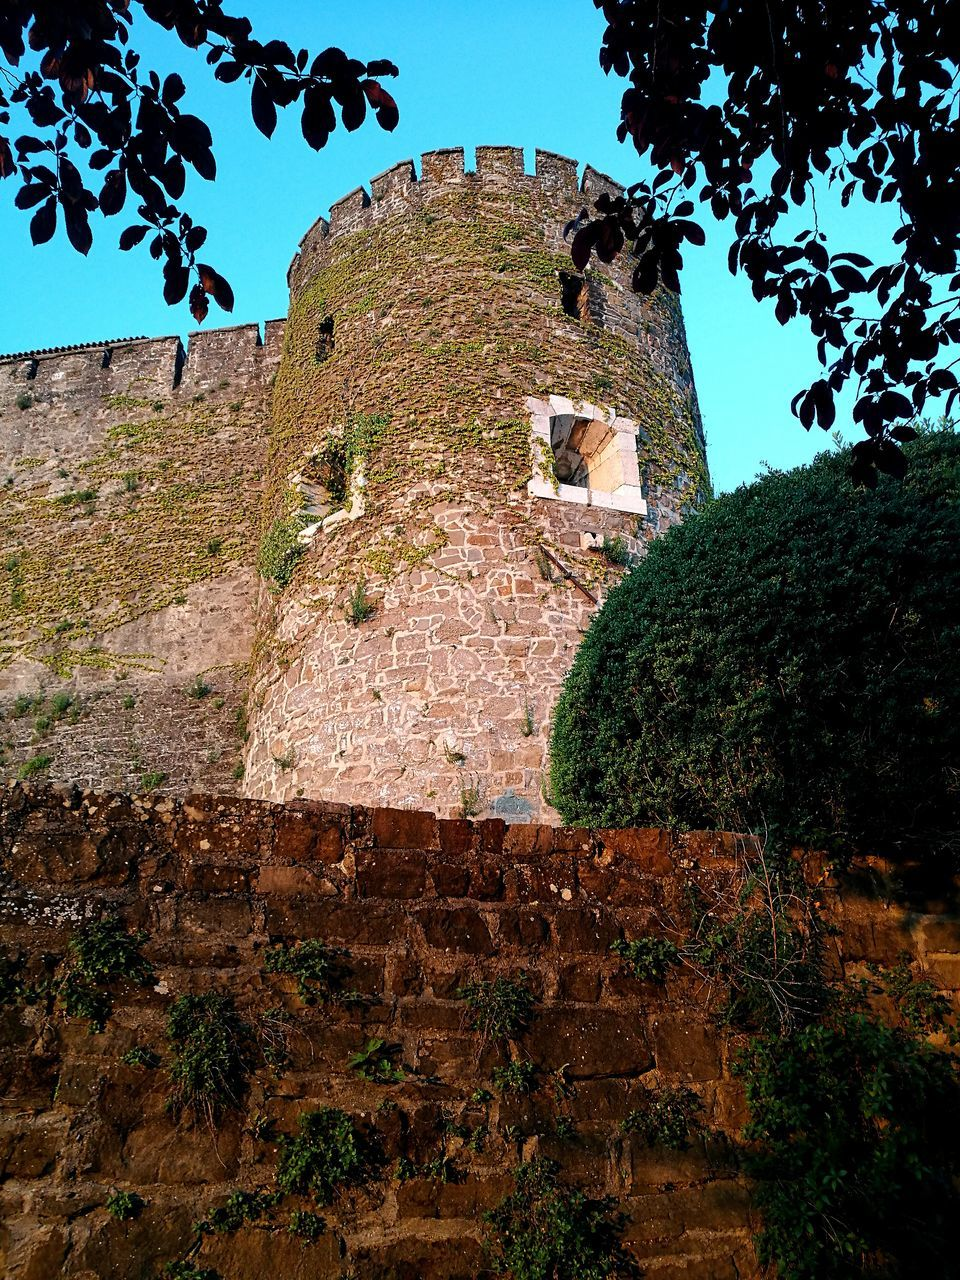 architecture, built structure, low angle view, history, building exterior, tree, the past, day, no people, ancient civilization, ancient, old ruin, castle, travel destinations, fort, outdoors, clear sky, nature, mountain, sky